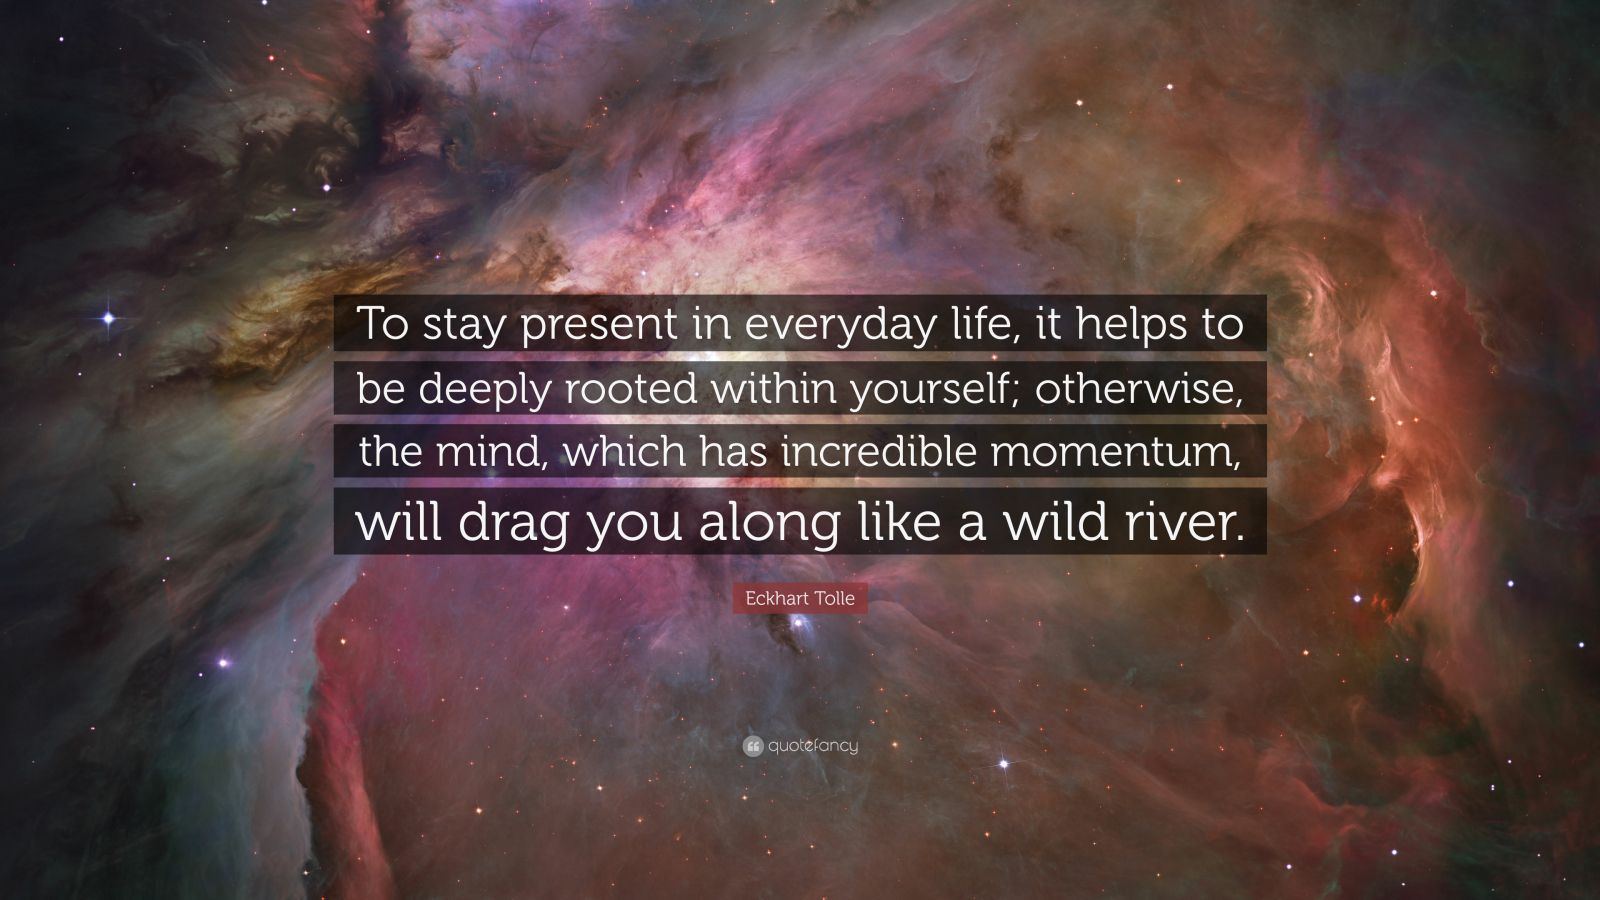 """Eckhart Tolle Quote: """"To stay present in everyday life, it helps to be deeply rooted within yourself; otherwise, the mind, which has incredible momentum, will drag you along like a wild river."""""""